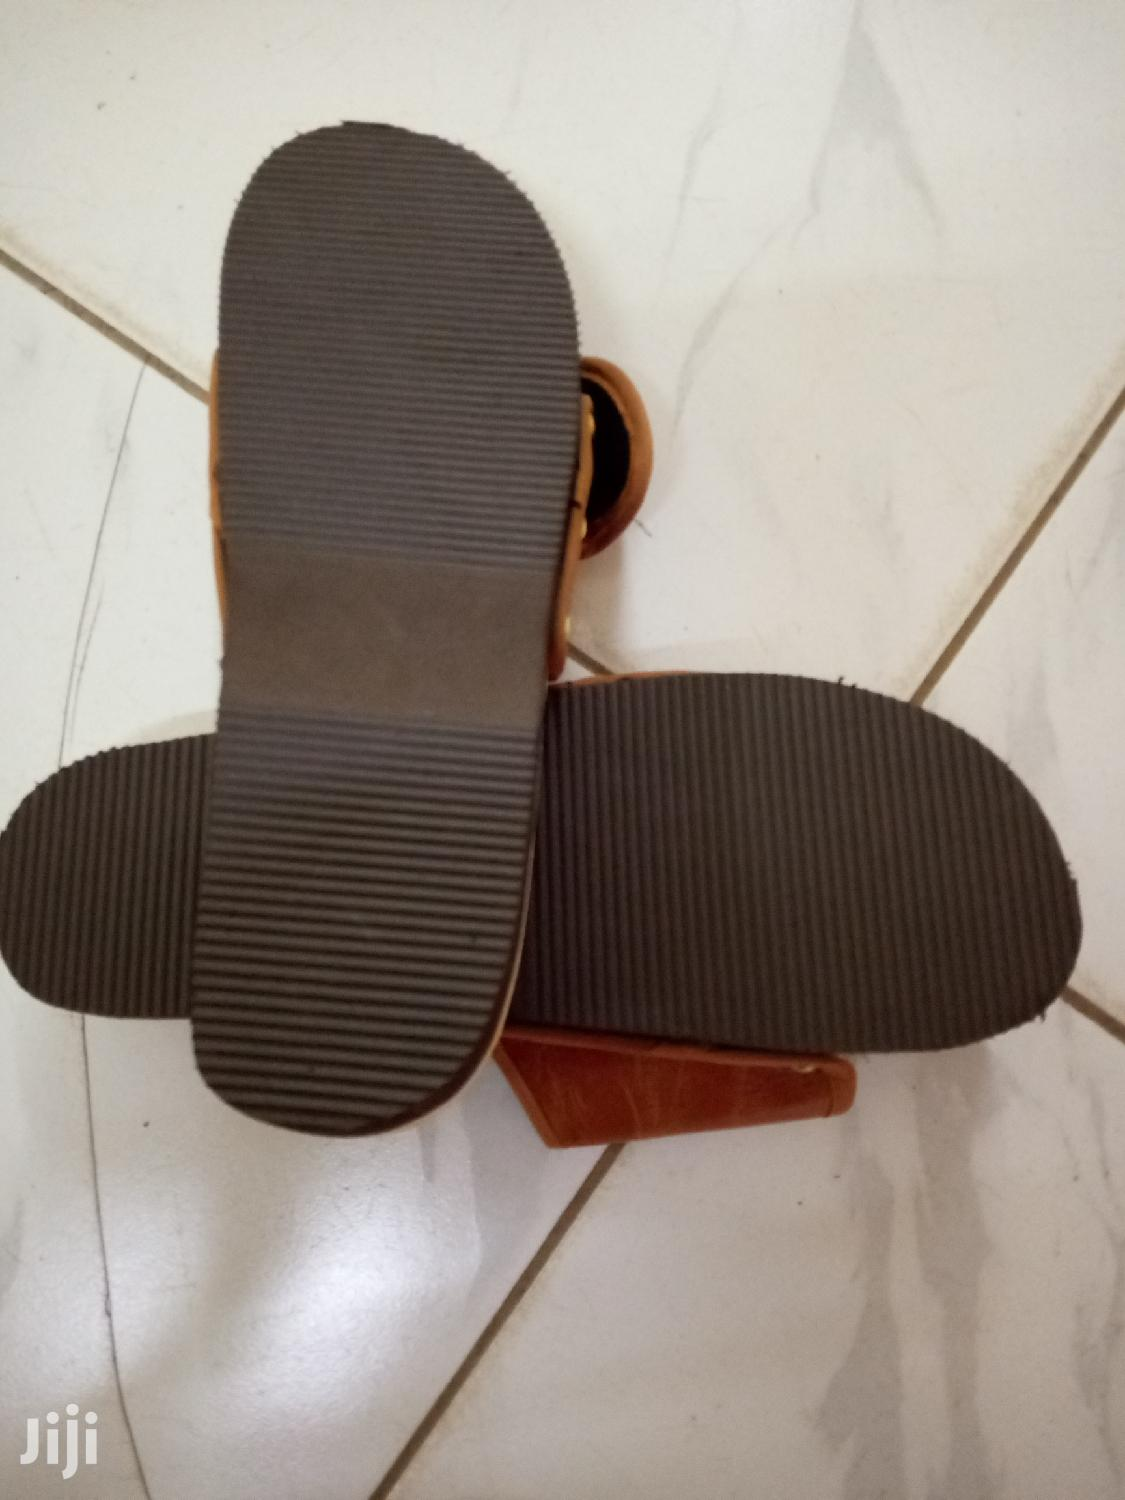 Foot Slippers/Sandals | Shoes for sale in Kampala, Central Region, Uganda